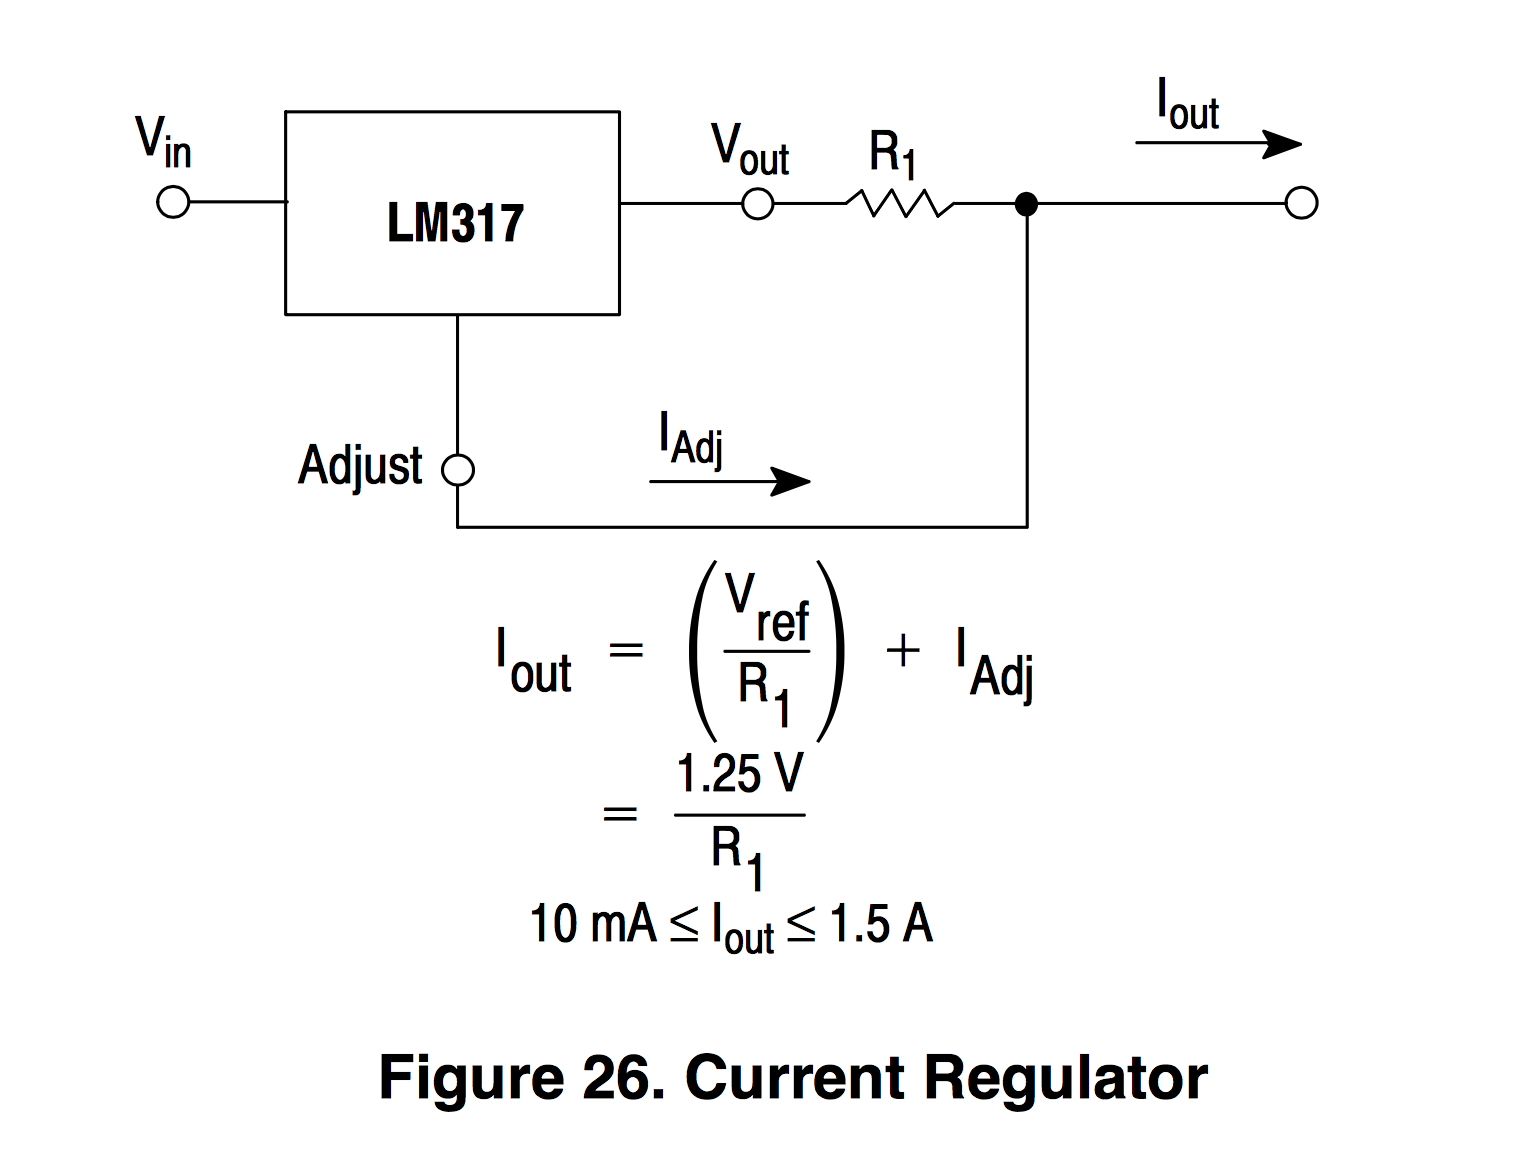 Voltage Regulators Revisted Lm317m 7812 Mcp170x Mic5219 And Icl7660 Controlled Resistor Pictures This Current Regulator Circuit Is Even Simpler Than Using The Lm317 As A Which Requires Two Resistors To Create Divider